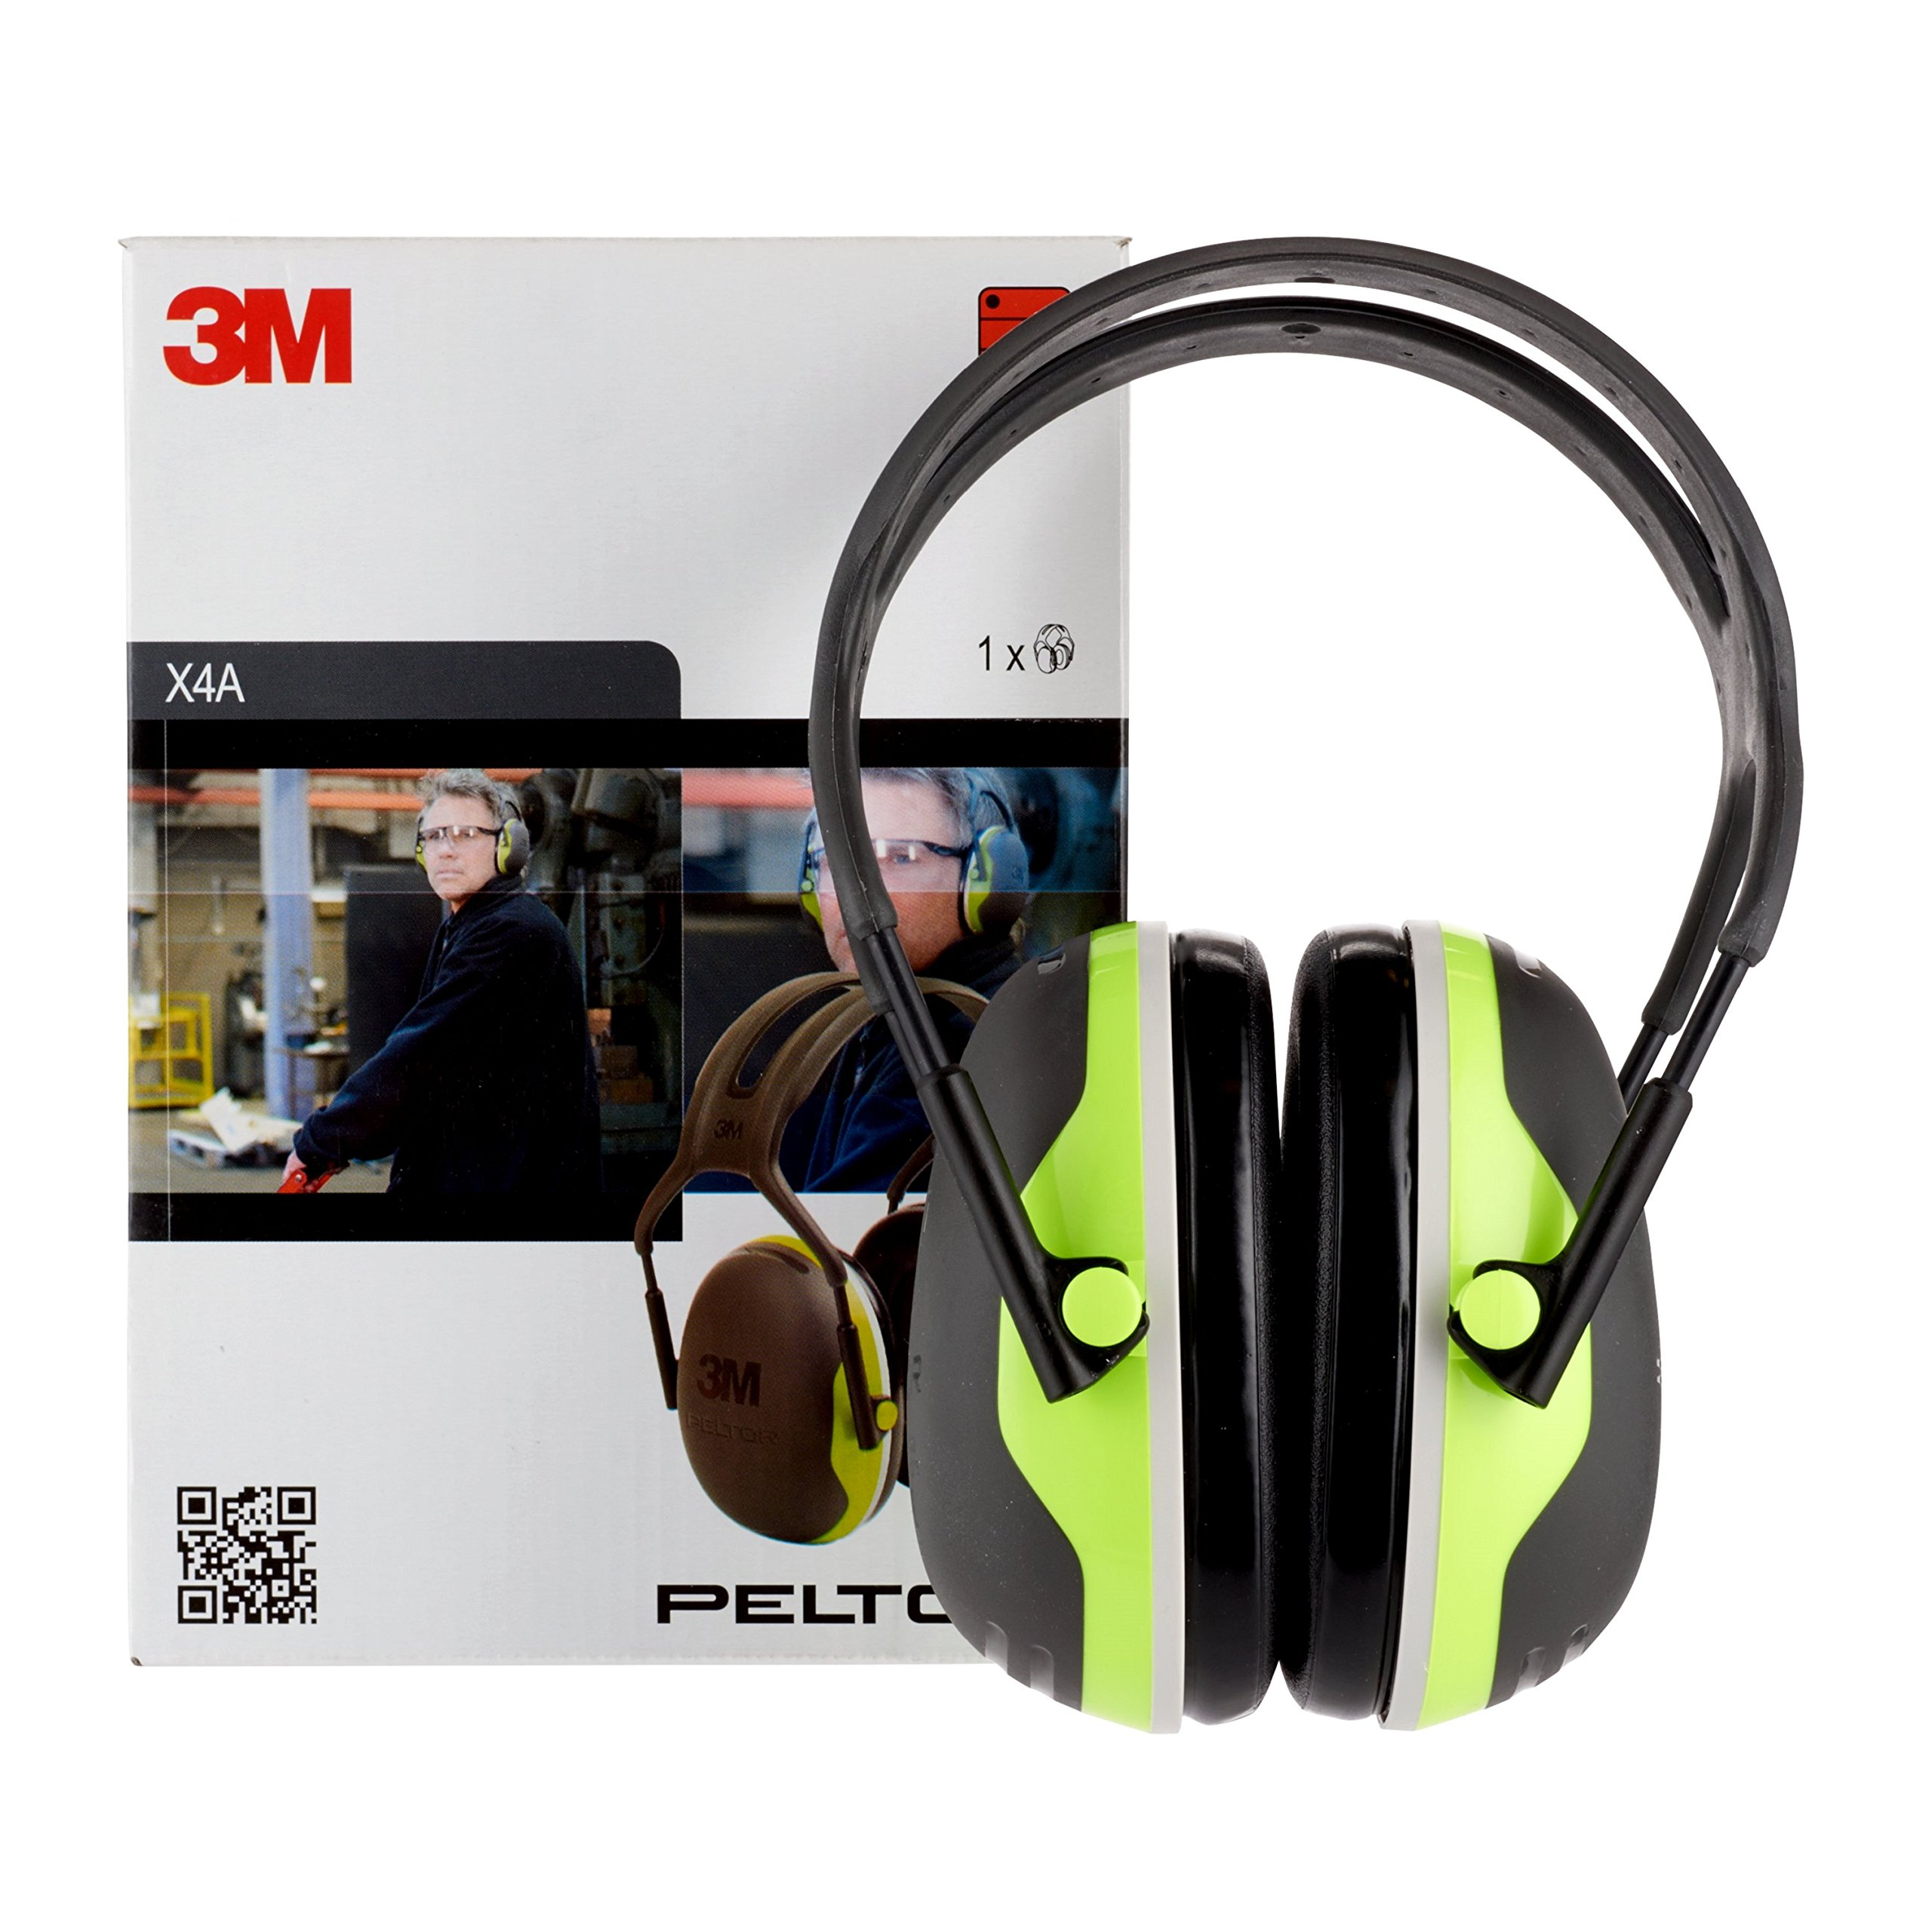 3M X4A Peltor Black and Chartreuse Model /37273, Plastic, 1'' x 1'' x 1''